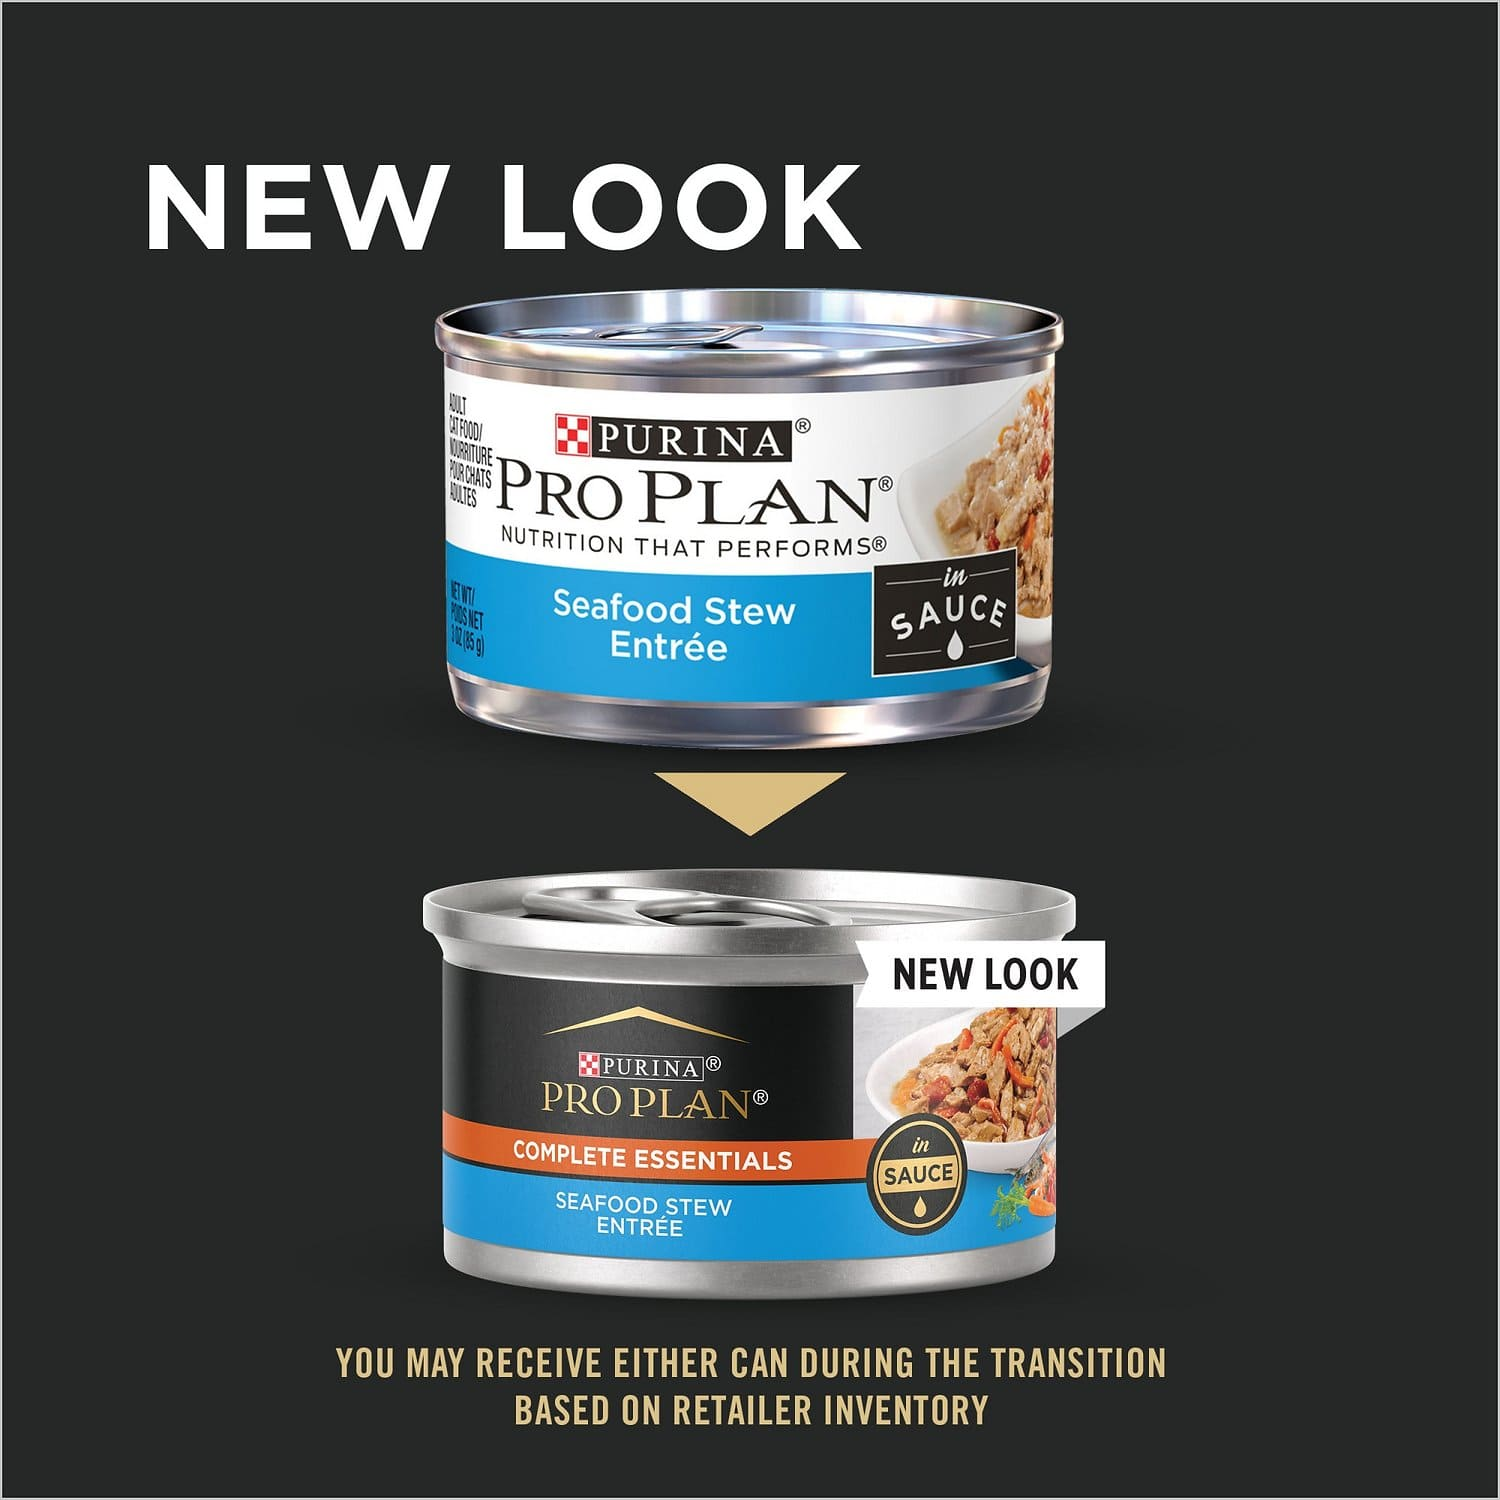 Purina Pro Plan Complete Essentials Entree in Sauce 24 x 3 oz can Seafood Stew 2